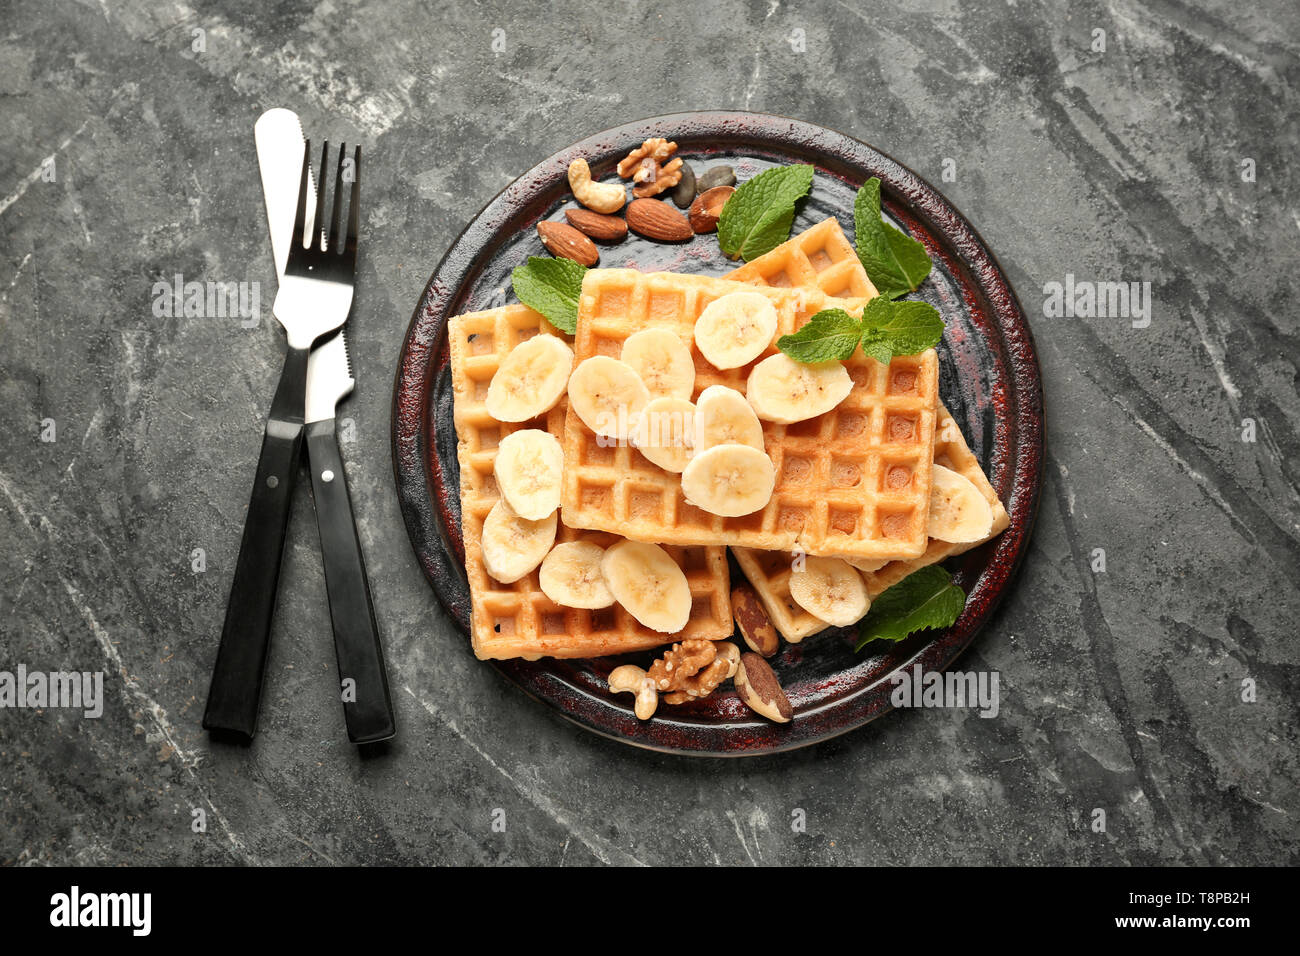 Delicious waffles with banana slices and nuts on dark table - Stock Image